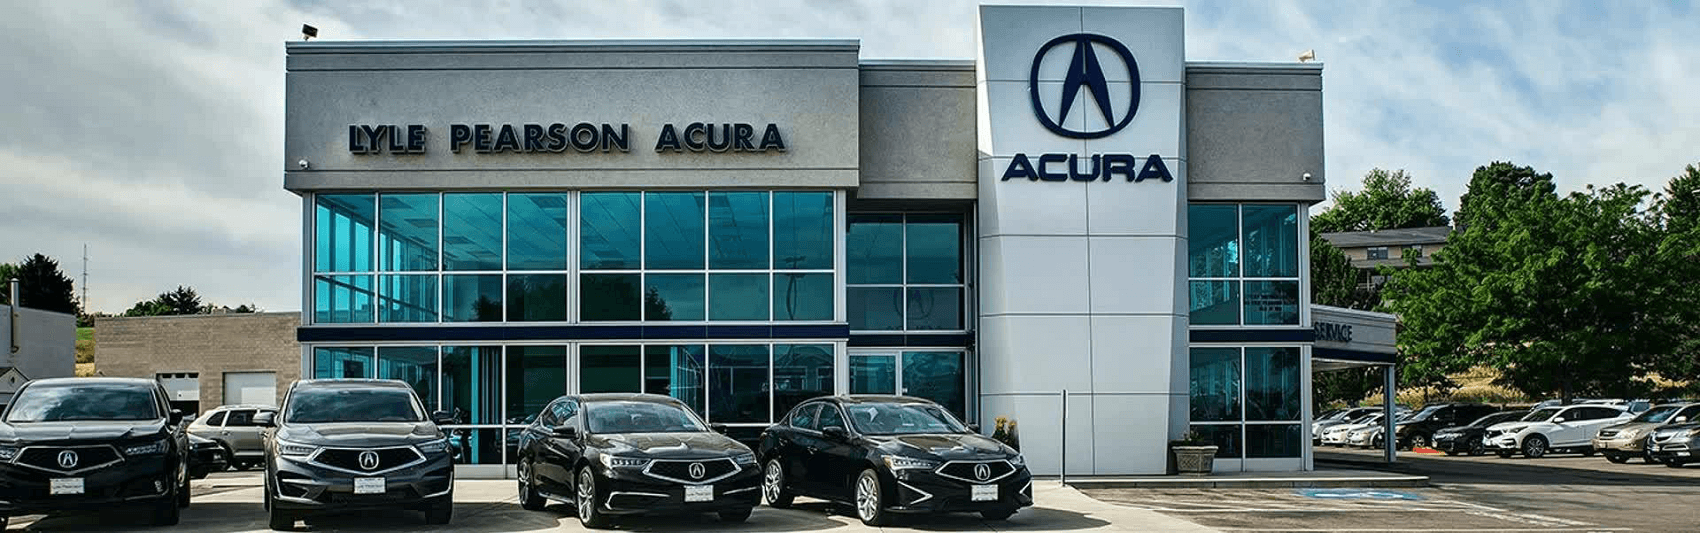 Acura Dealer near Caldwell